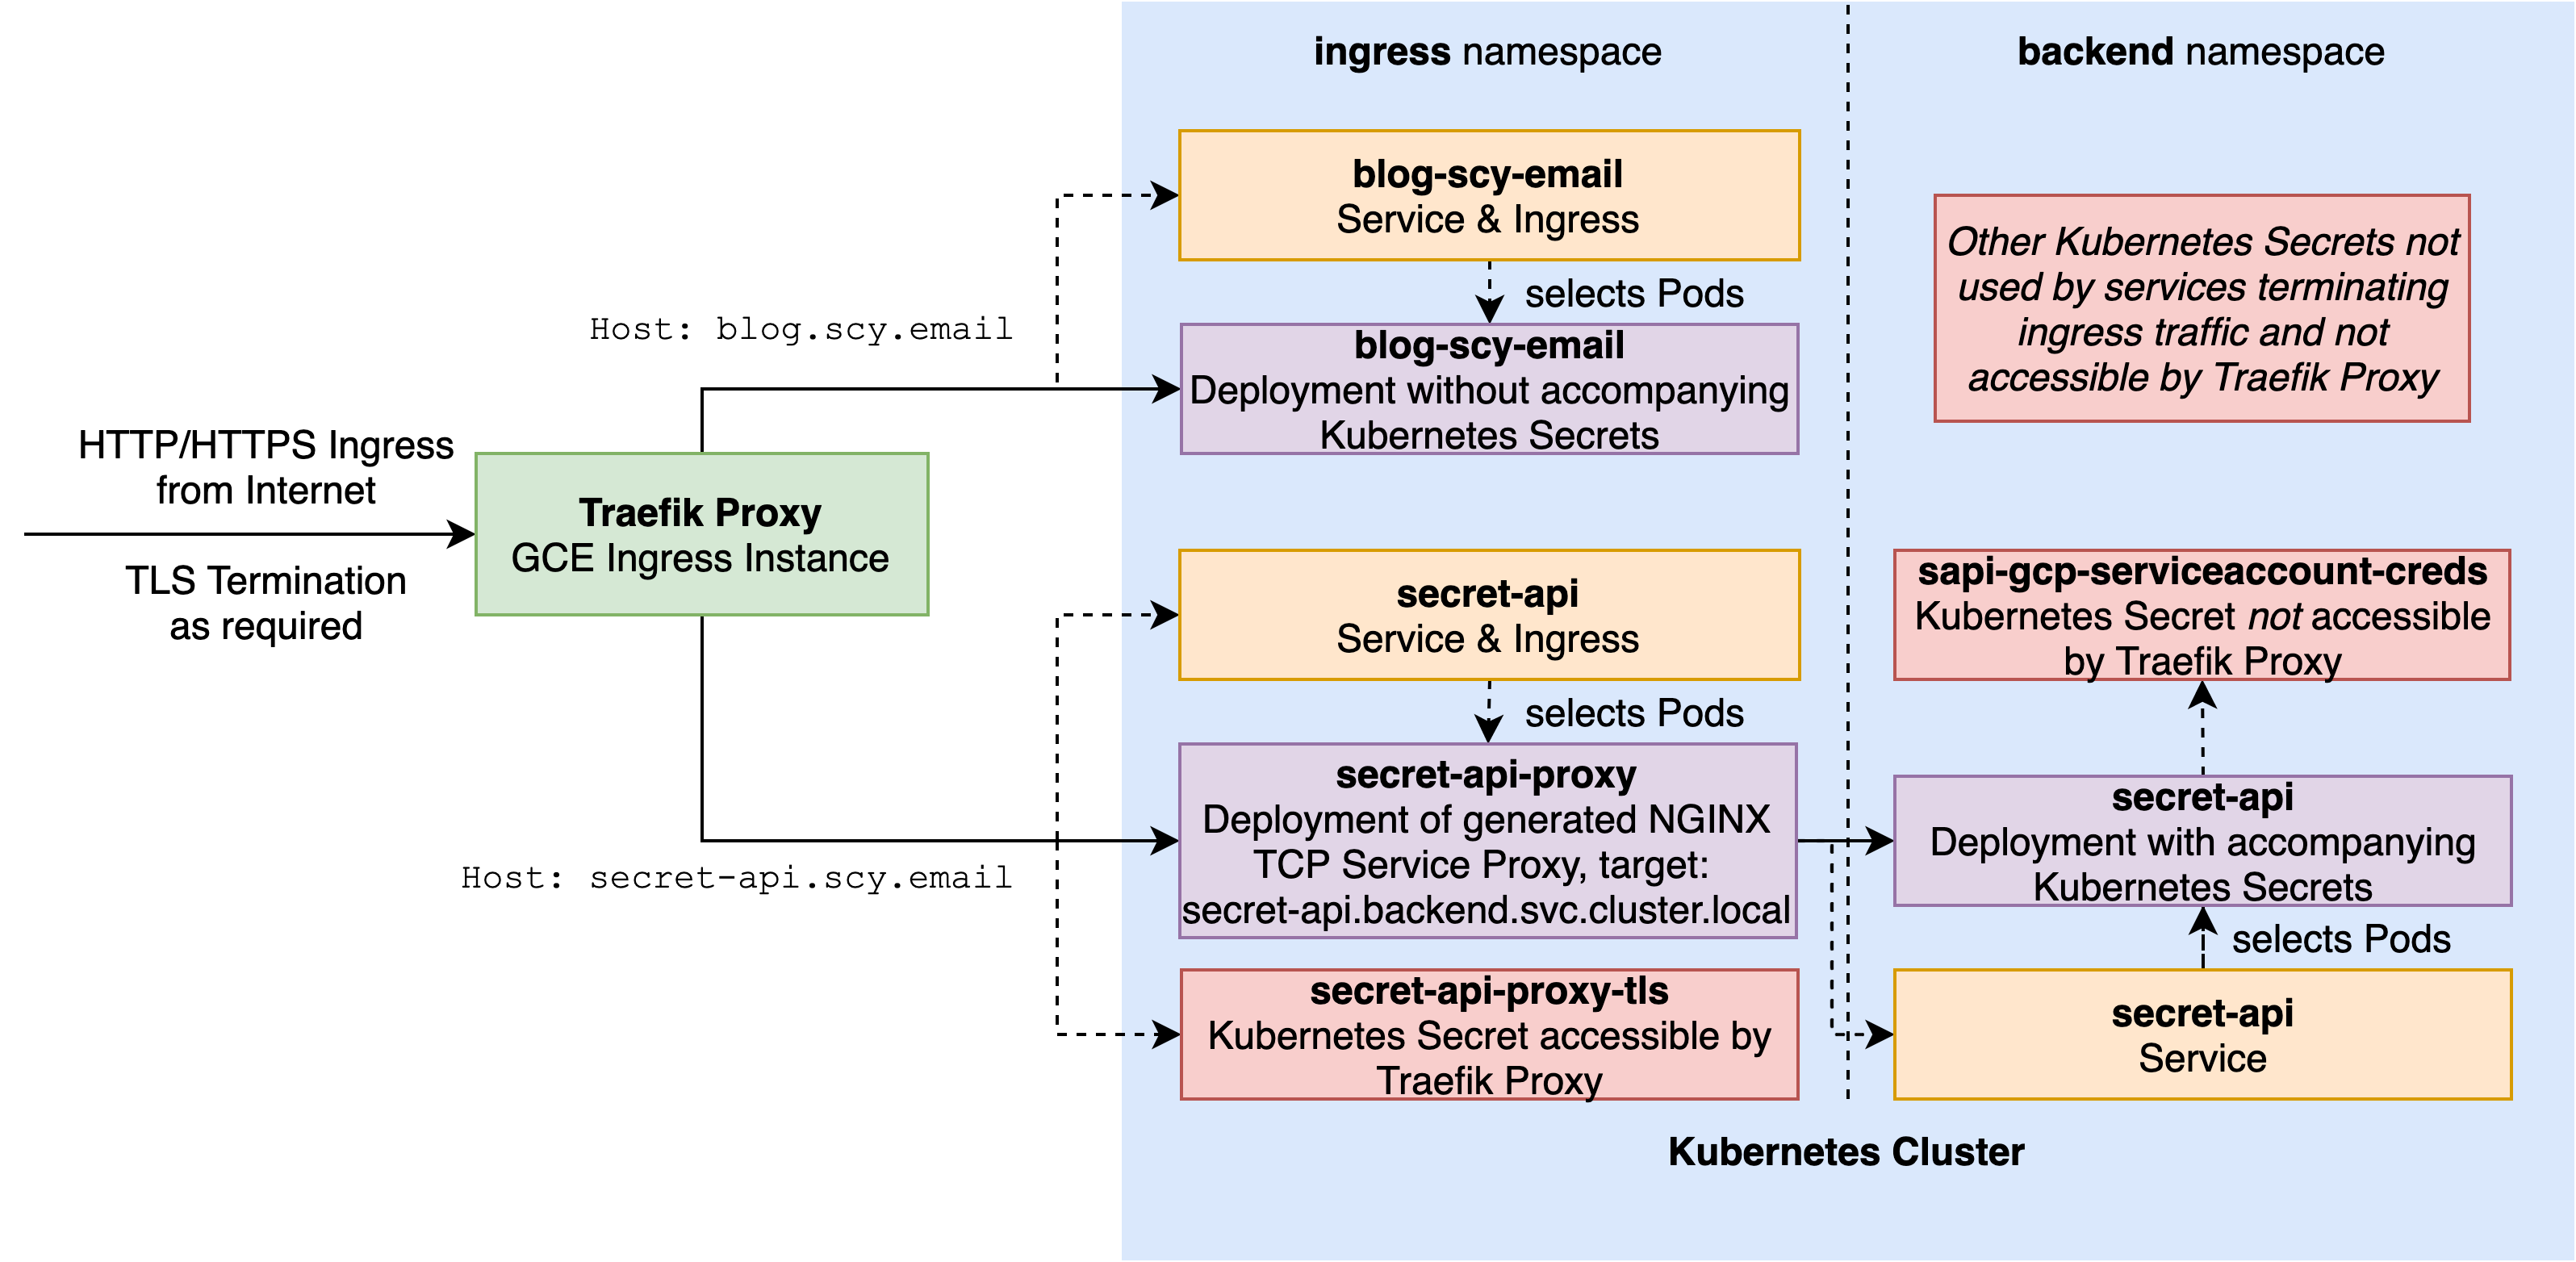 Using a generated service proxy to avoid exposing sensitive backend Kubernetes Secrets to Traefik due to controller namespace access requirements